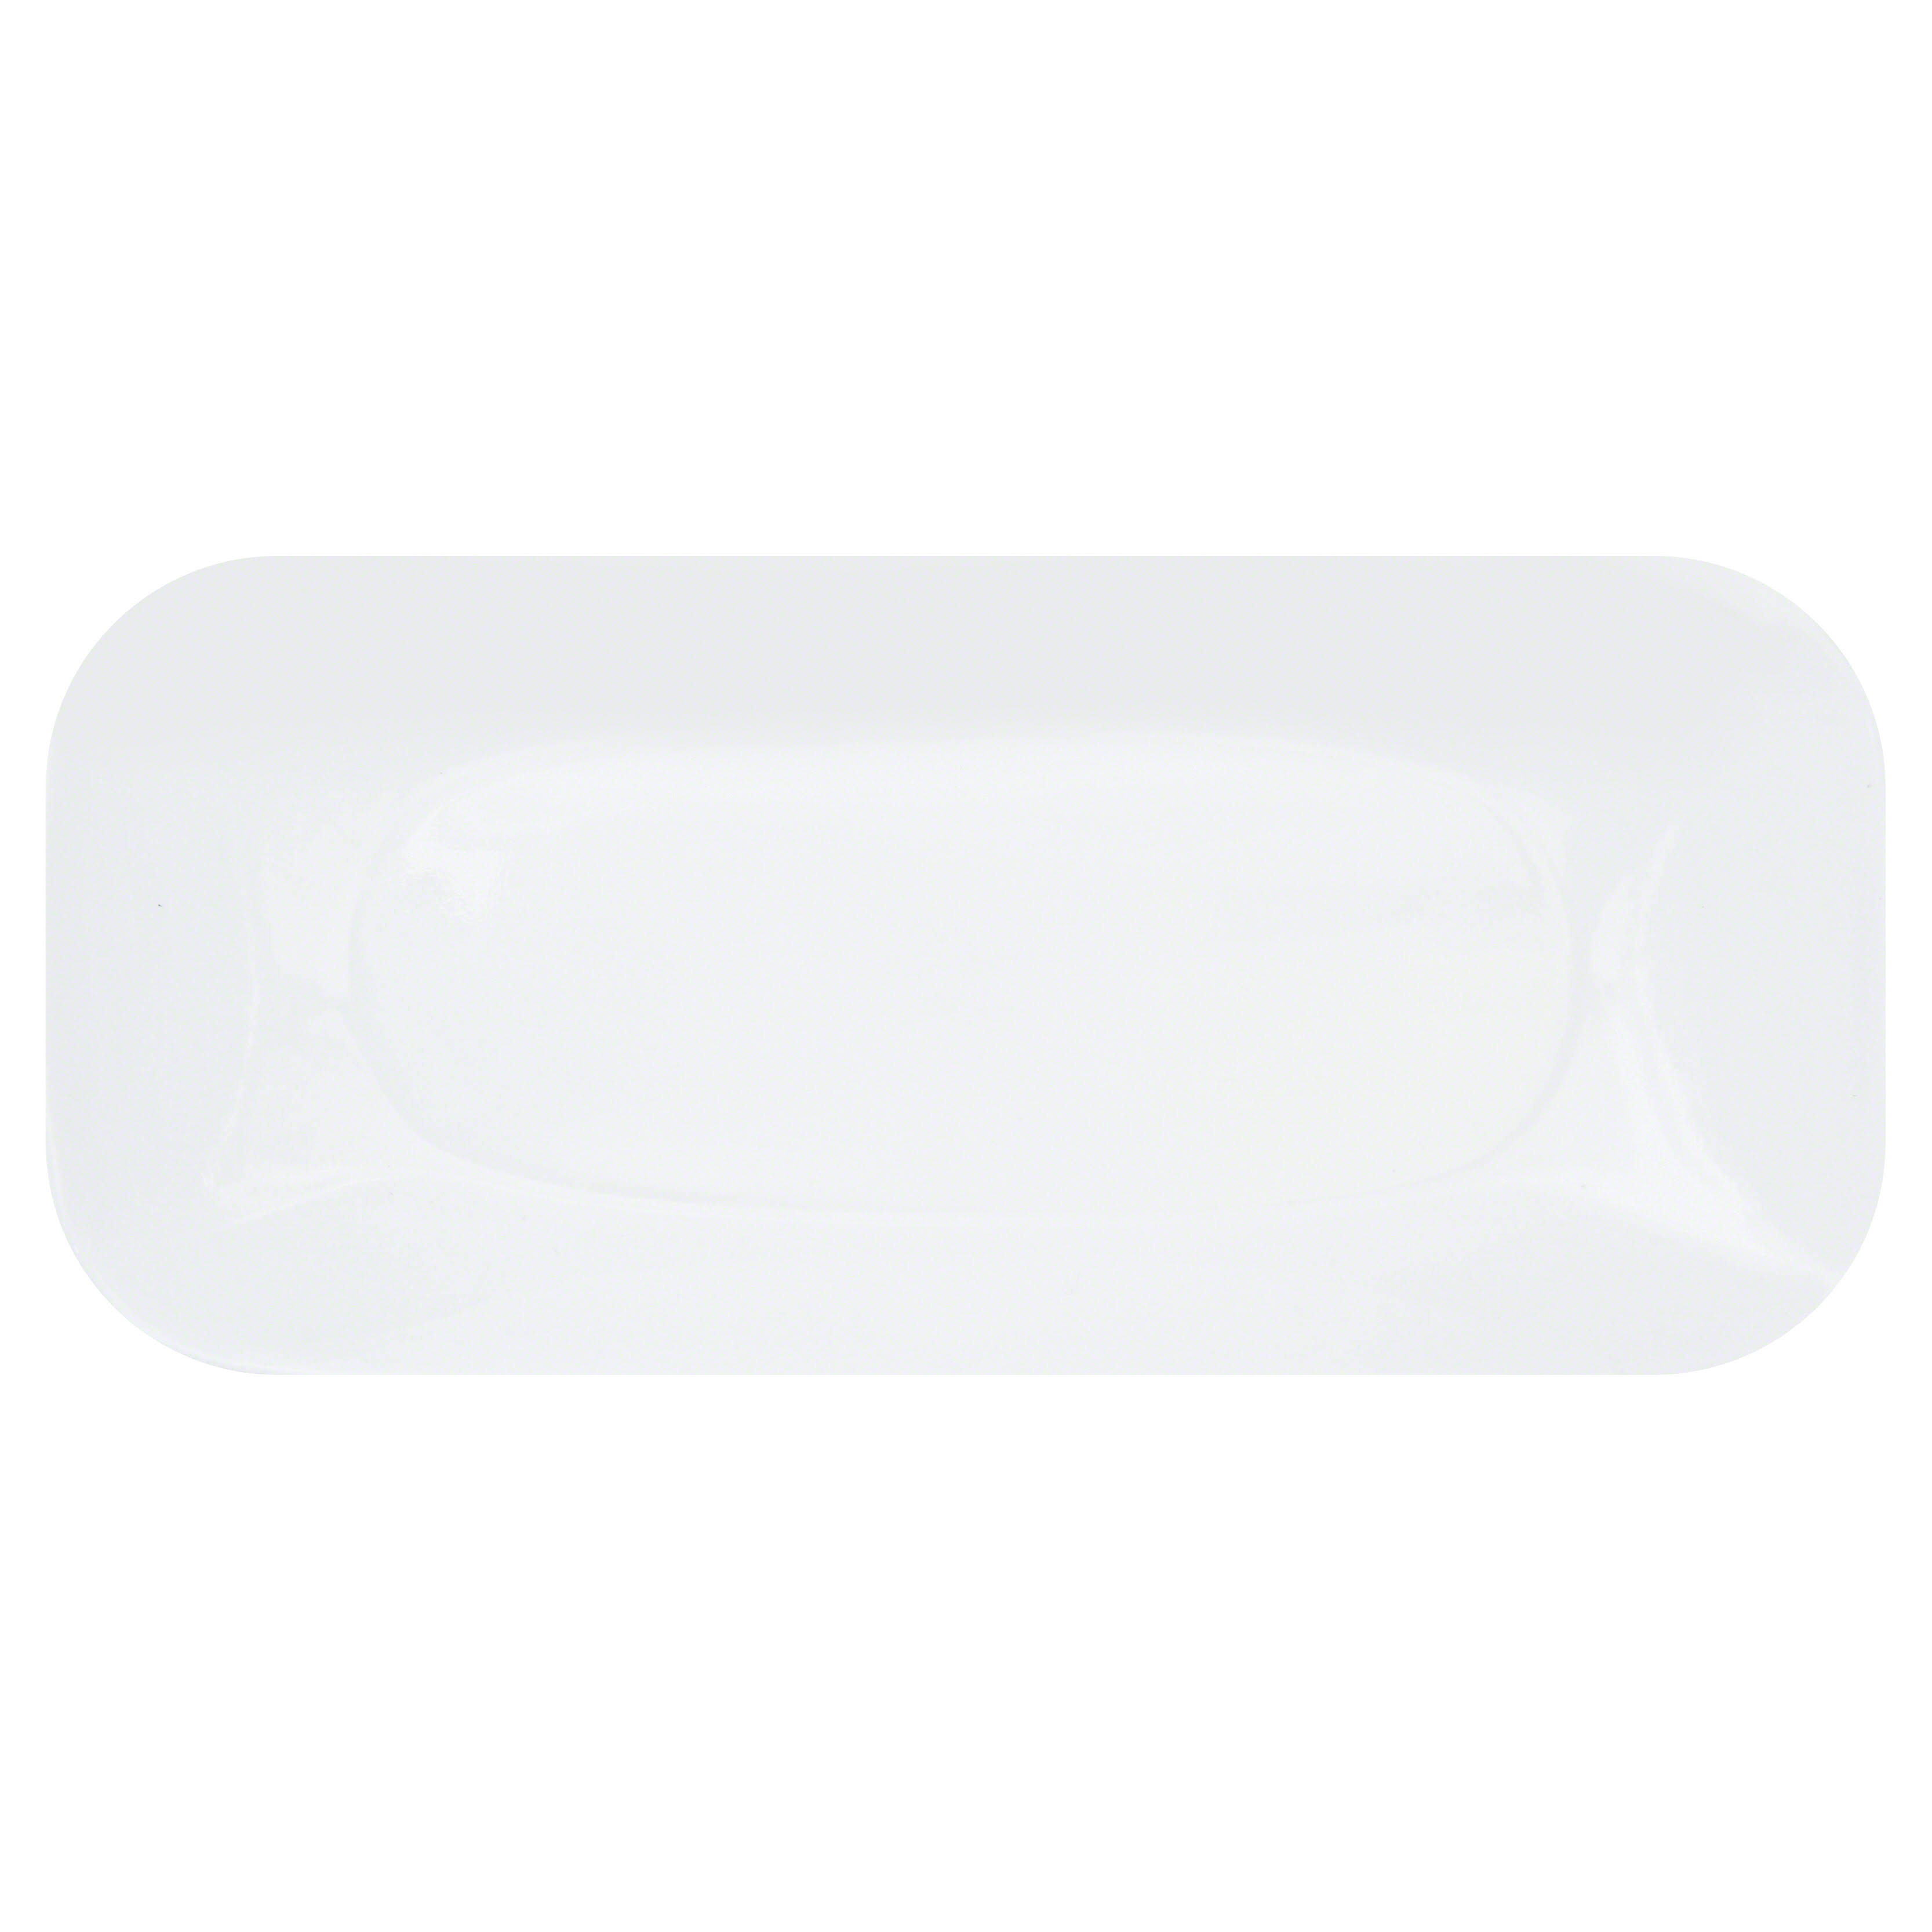 Corelle Square Round Serving Tray - Pure White, 10.5""